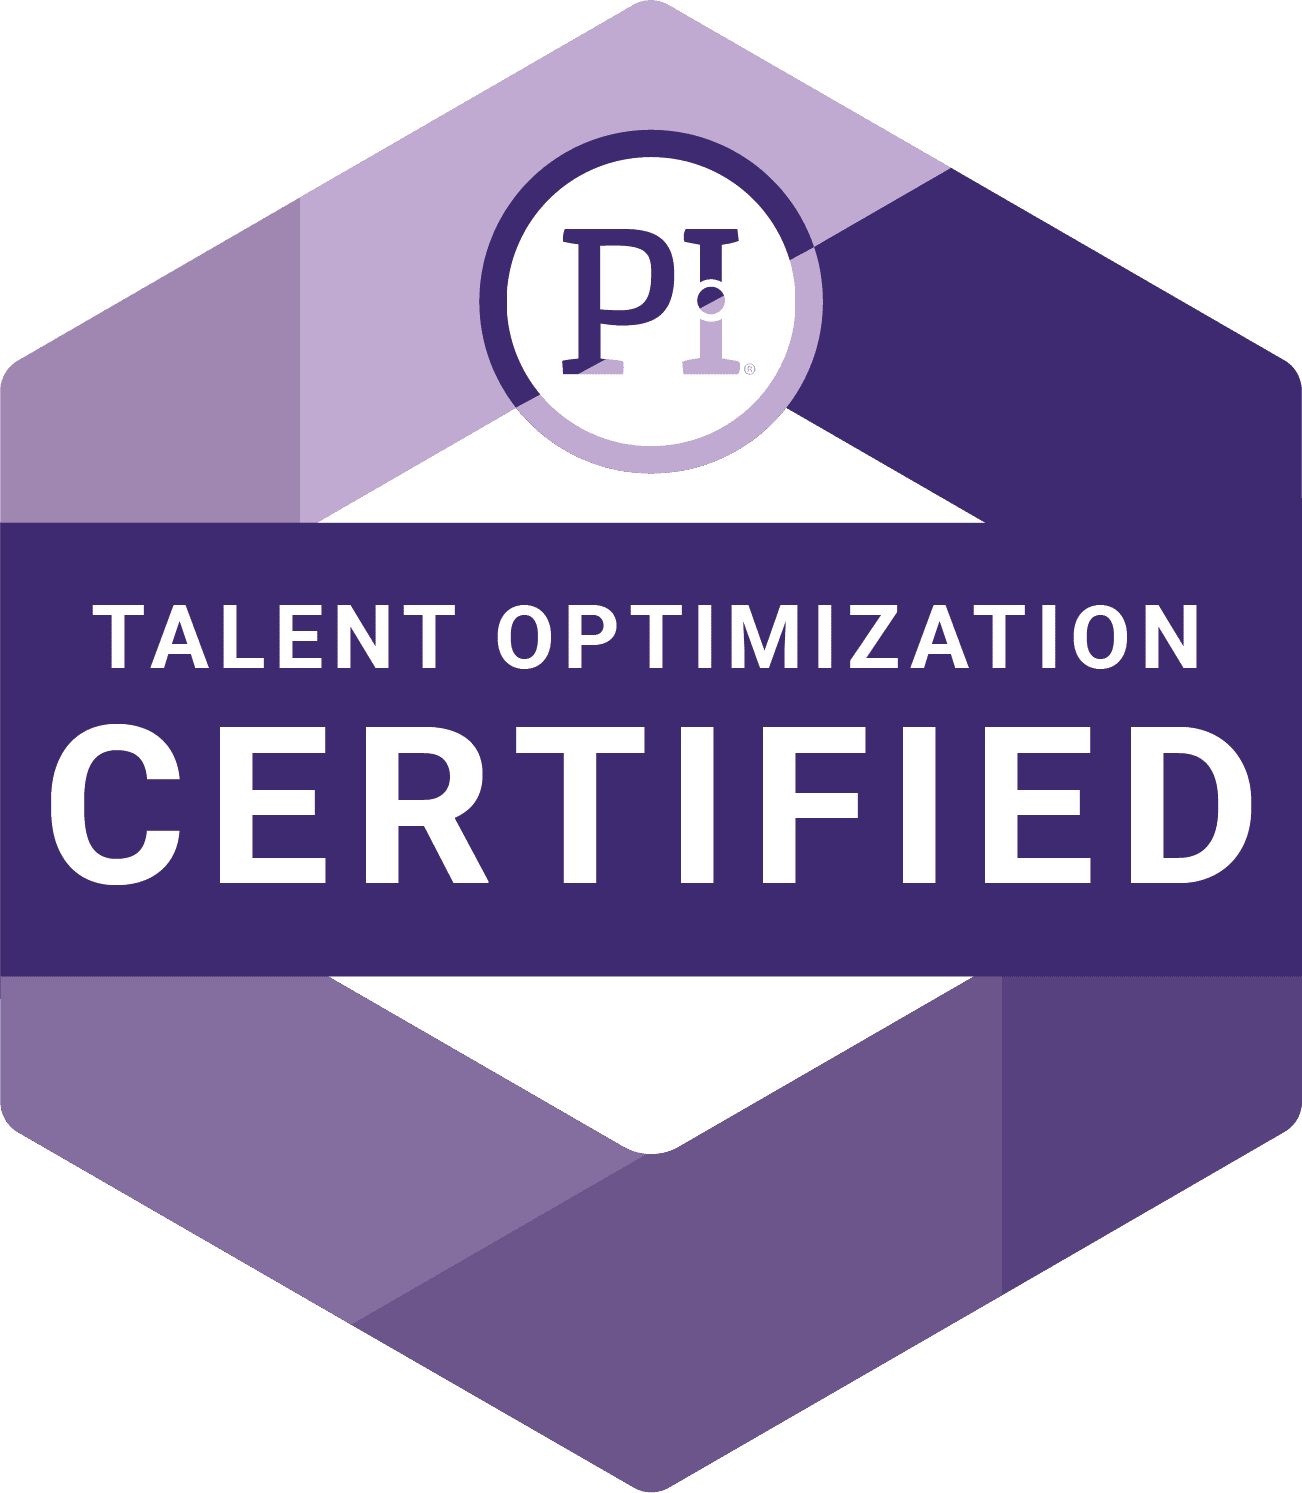 Talent-Optimization-Badge-Certified1